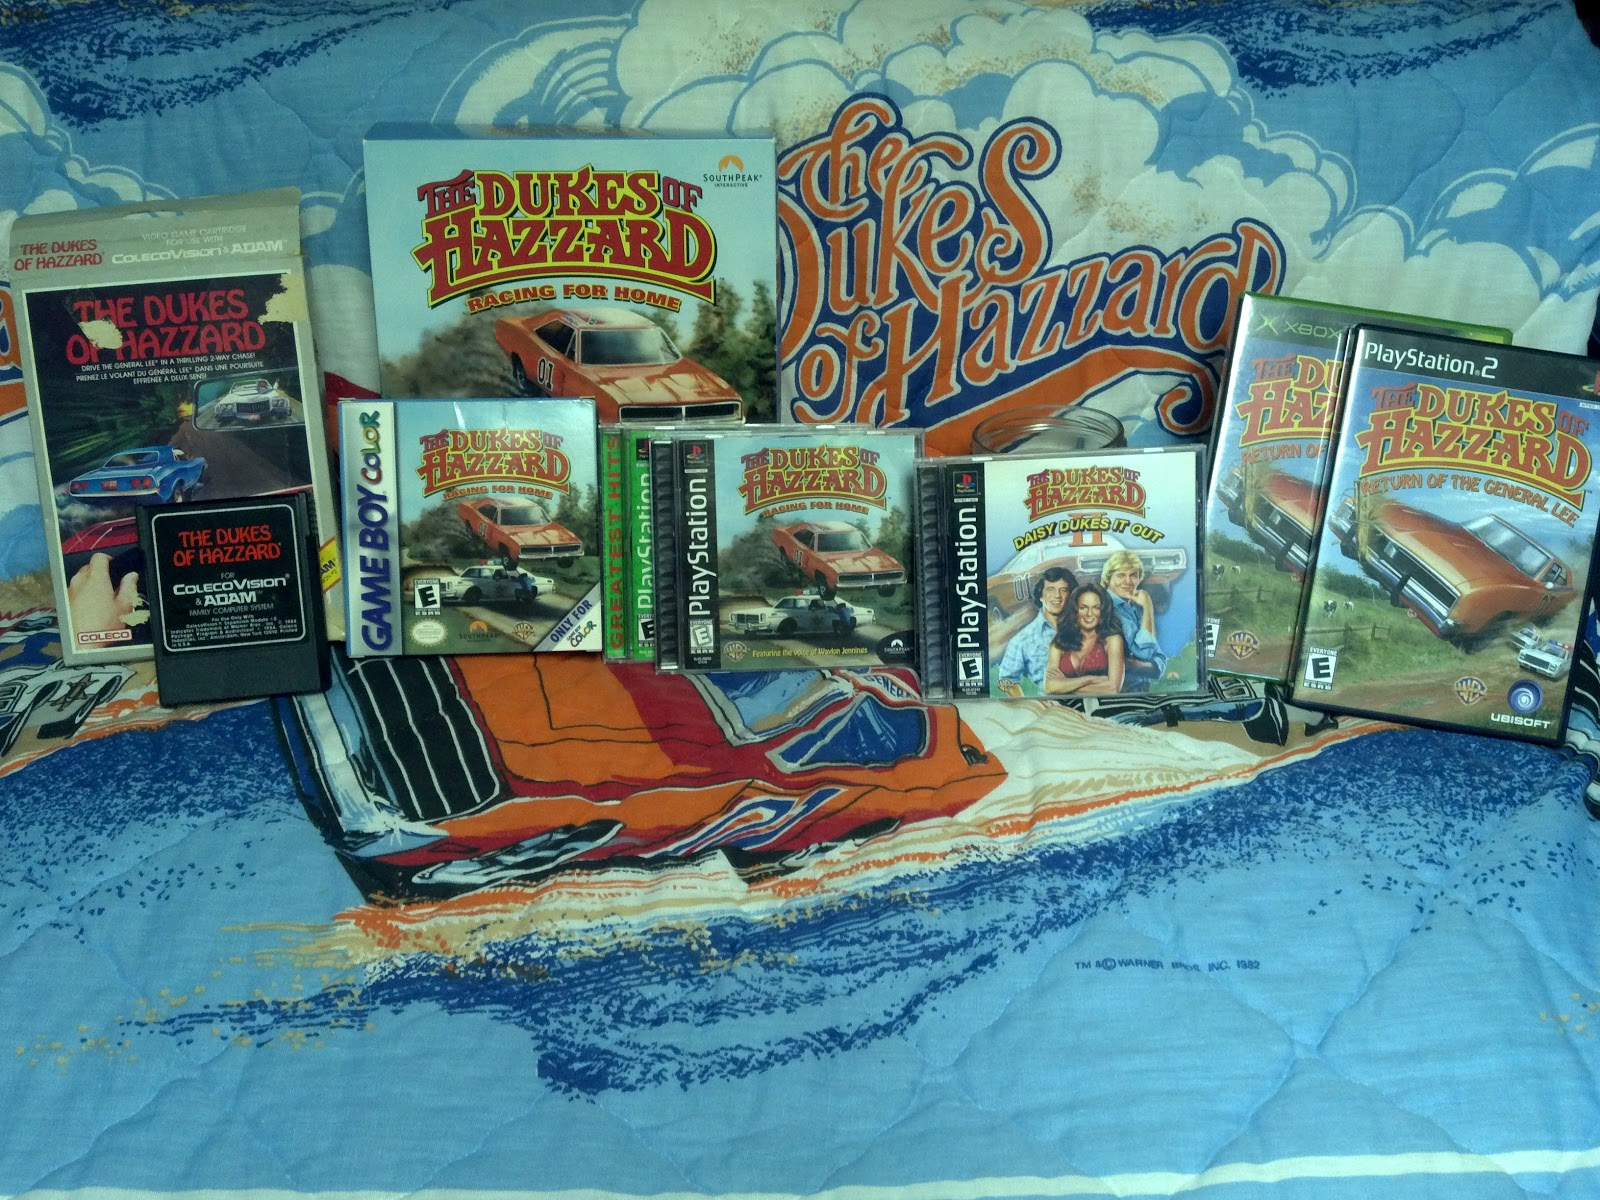 Download The Dukes Of Hazzard Games For Free free - hugeblogs